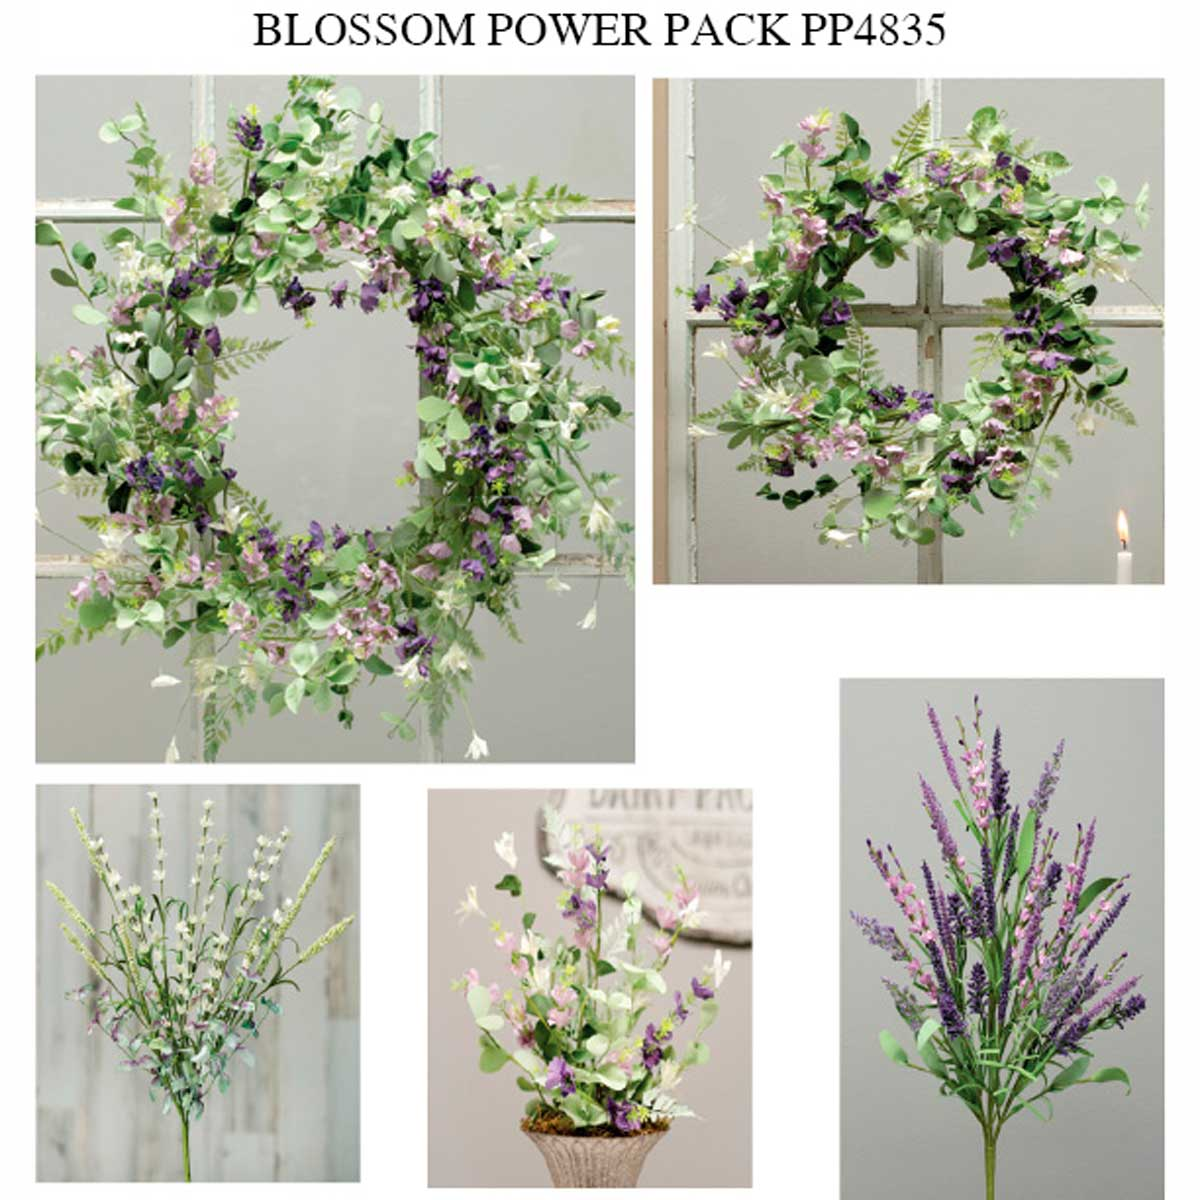 COTTAGE PURPLE BLOSSOM POWER PACK 13 UNITS